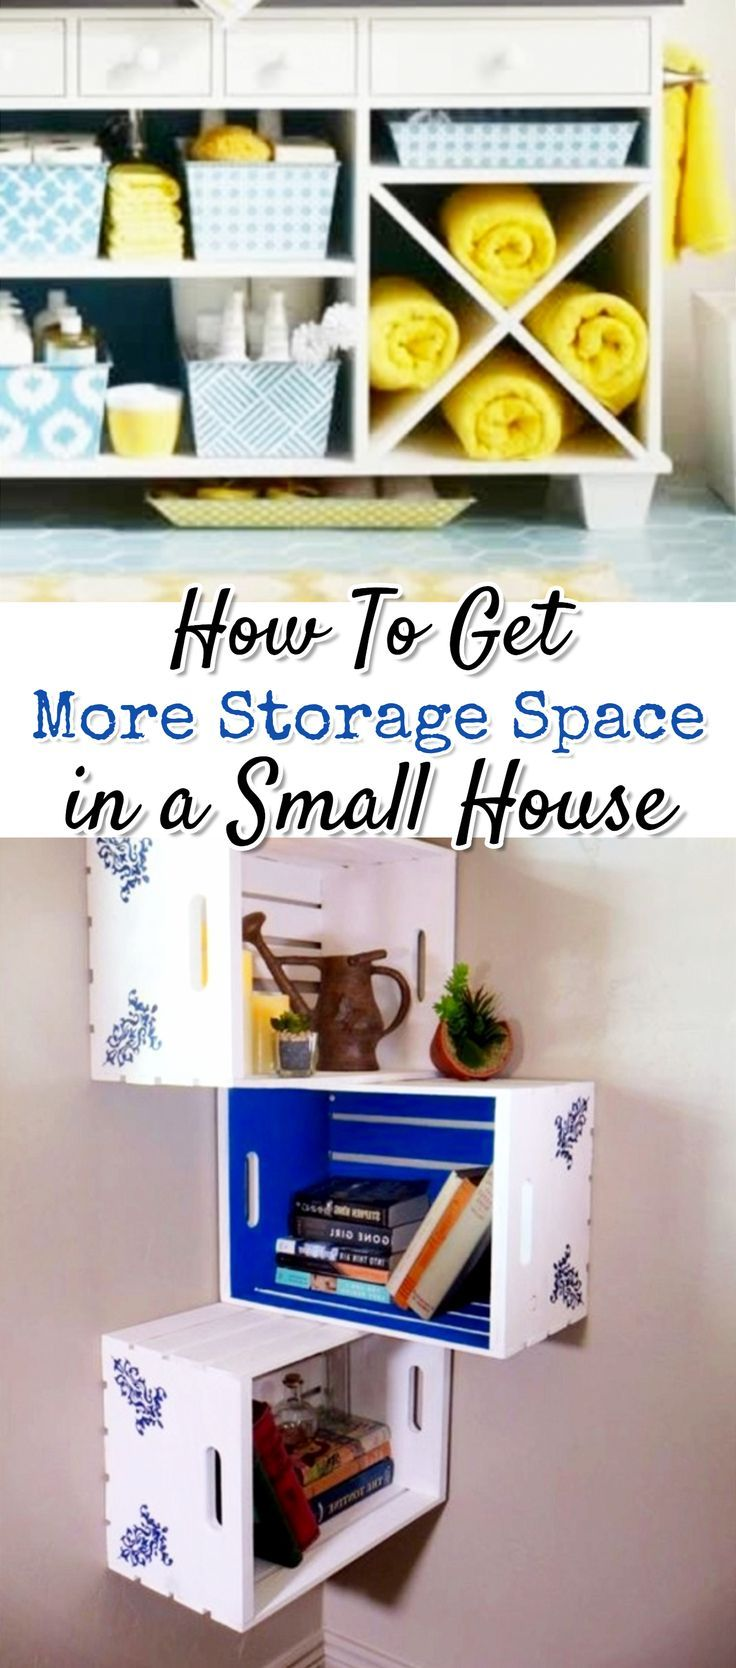 Creative Storage Solutions For Small Spaces Small House Storage